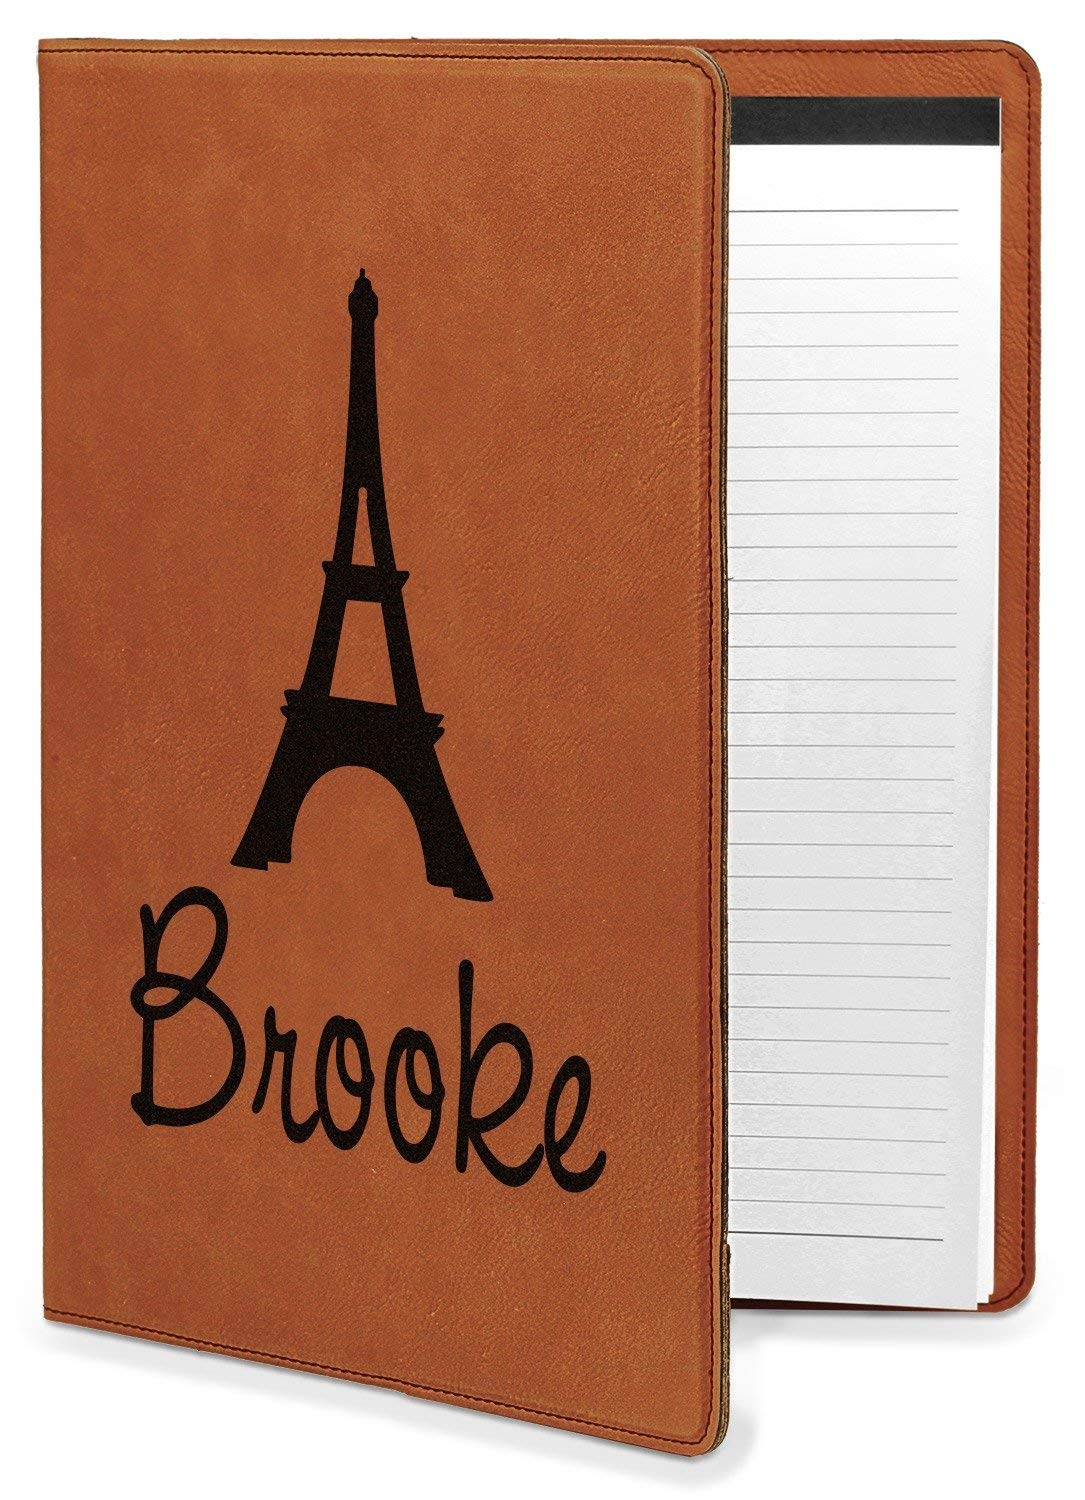 Eiffel Tower Leatherette Portfolio with Notepad - Large - Single Sided (Personalized)